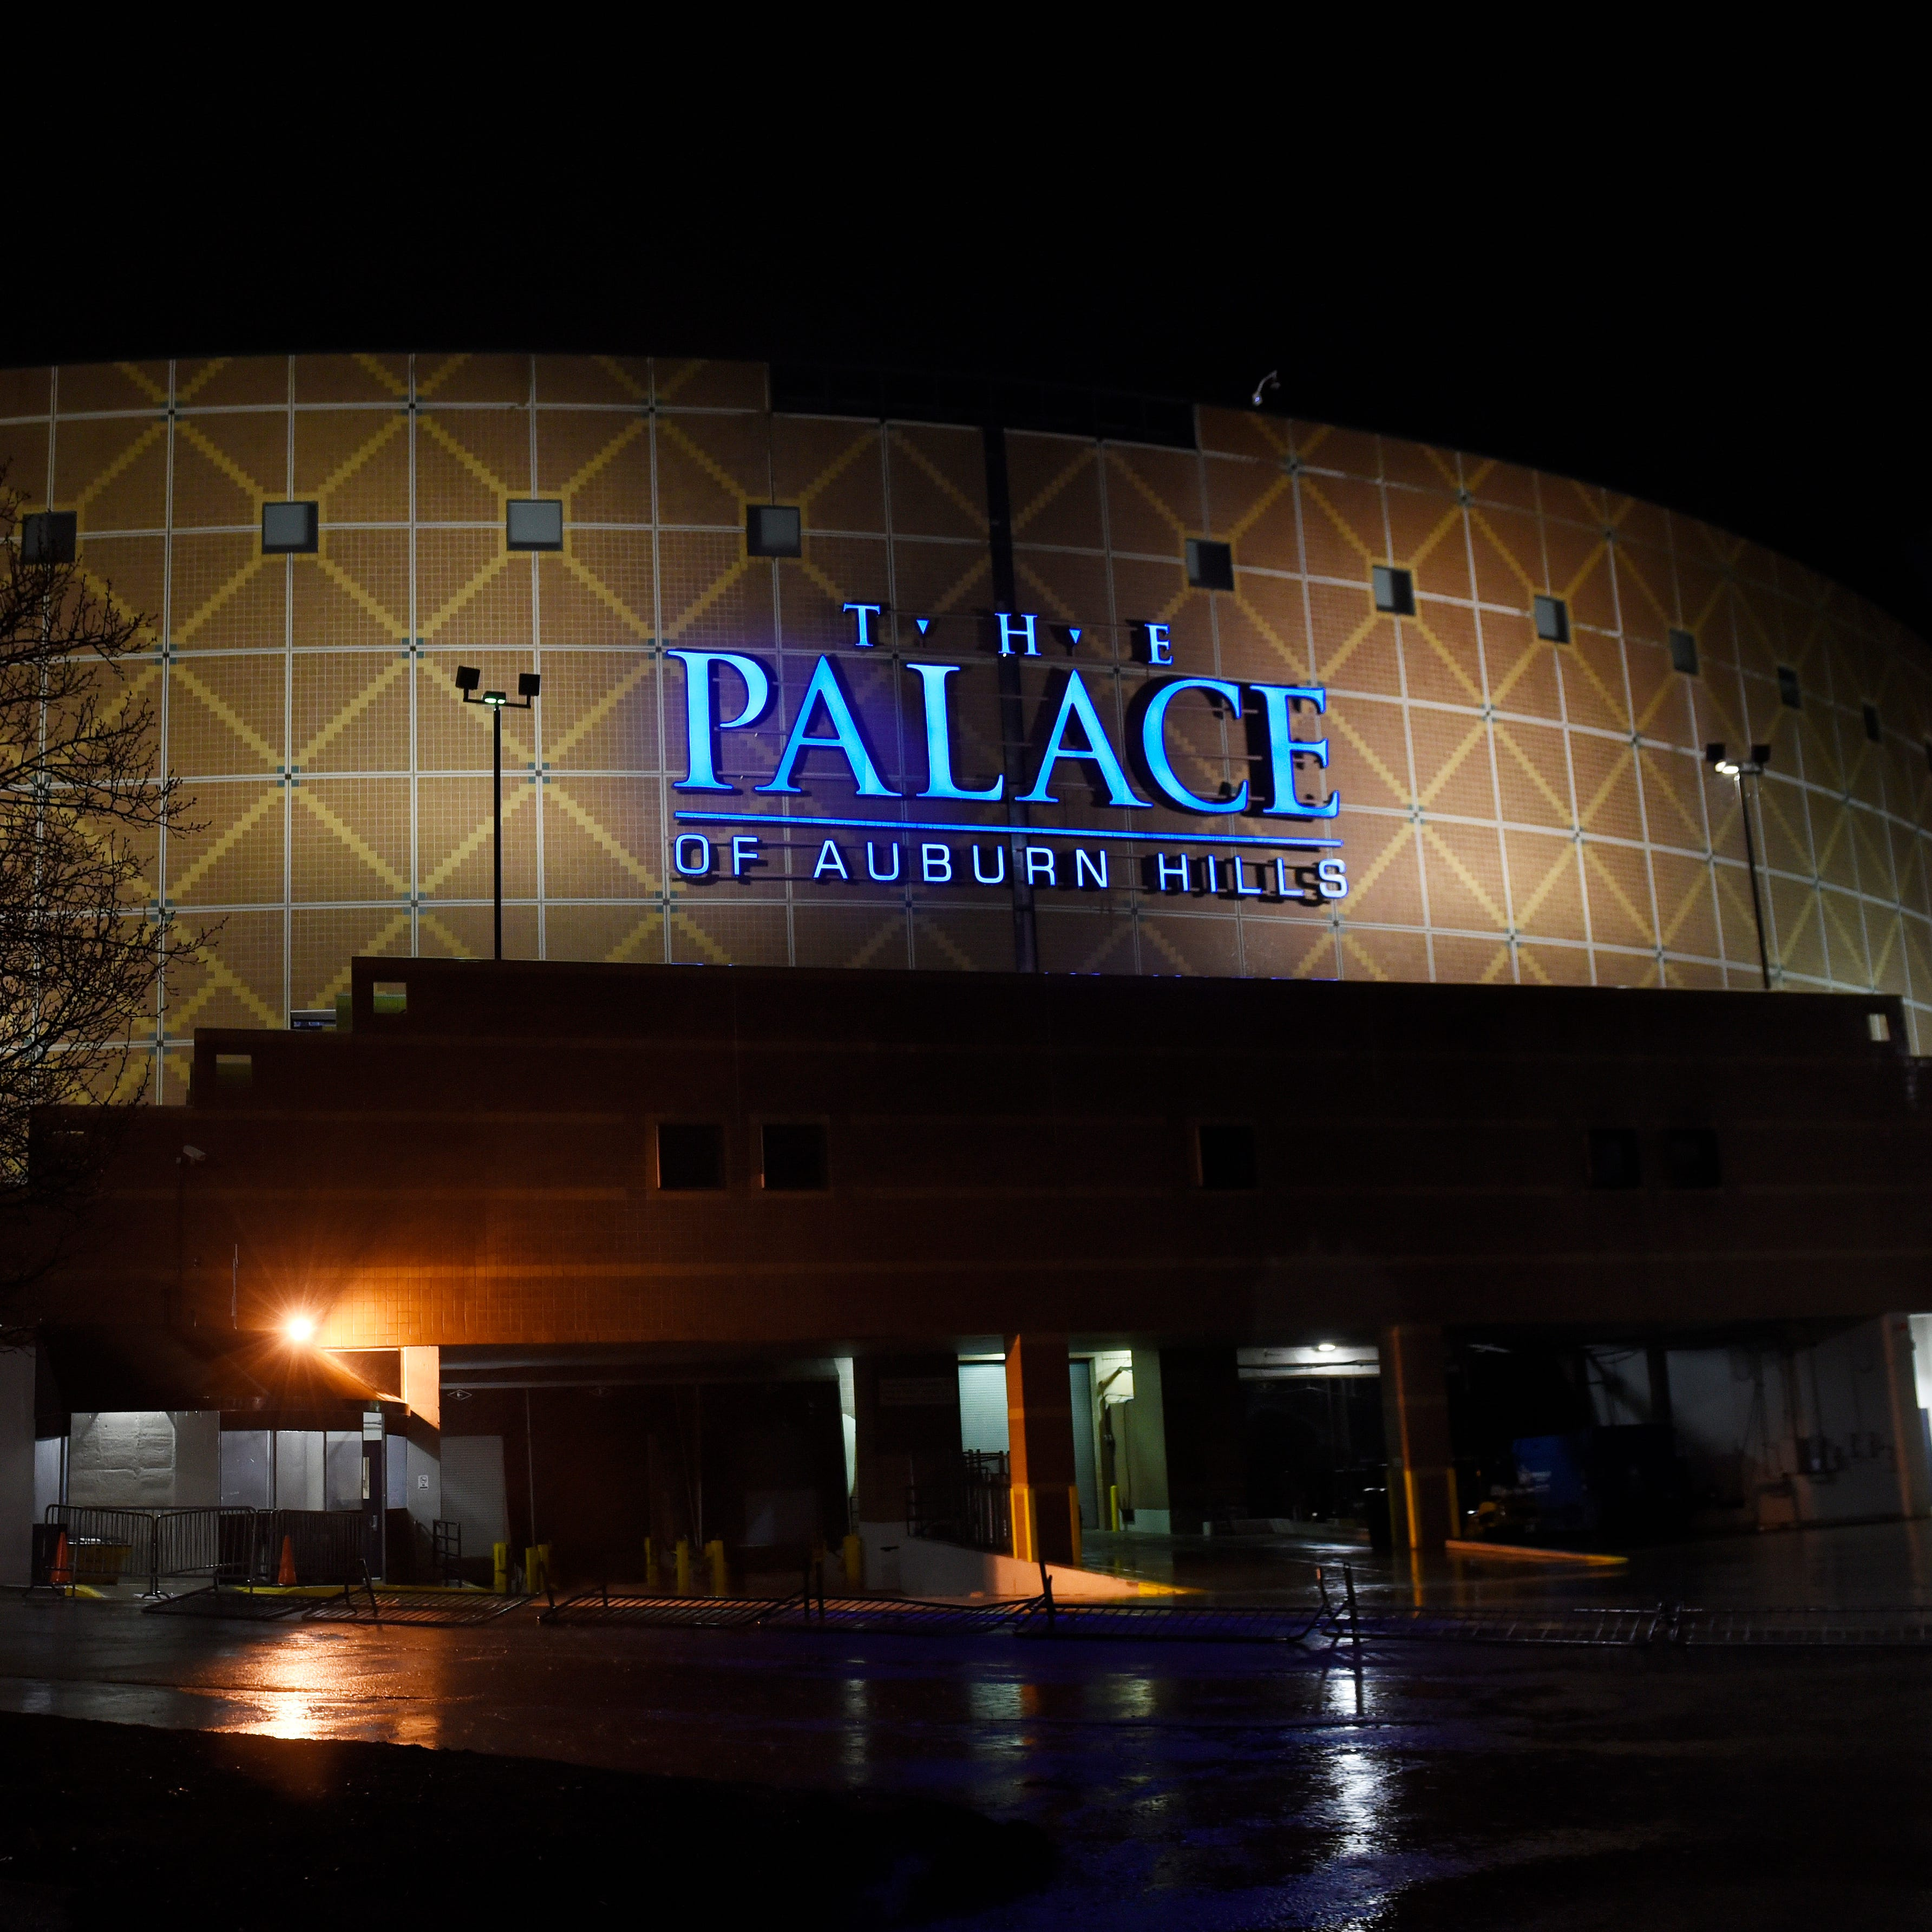 ESPN report: 86% of Palace food service outlets had 'high-level' violations in '16, '17